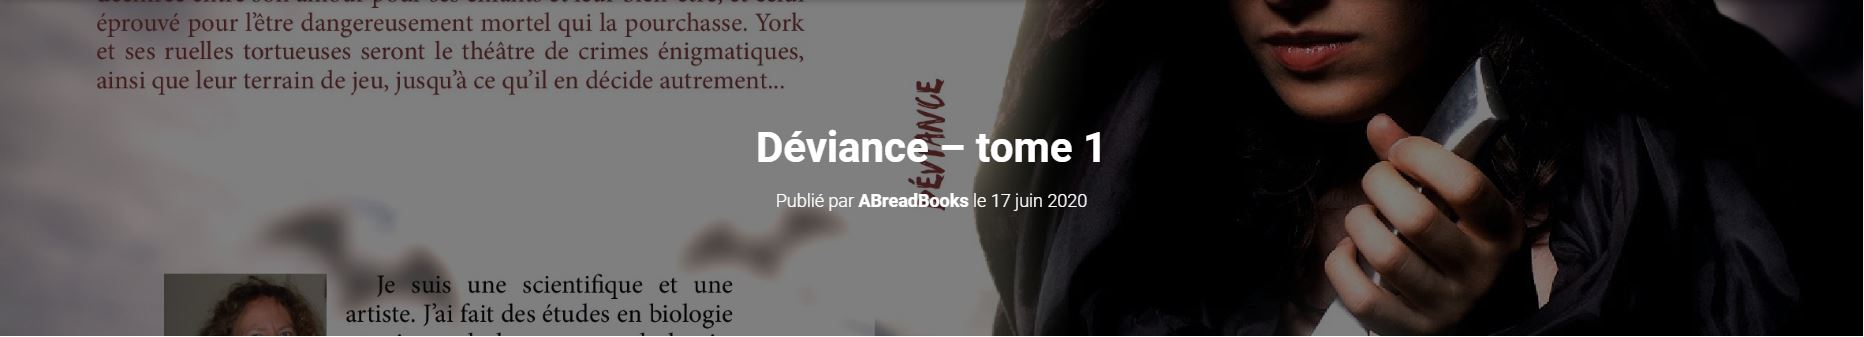 Site Abbey Read - Déviance Tome 1